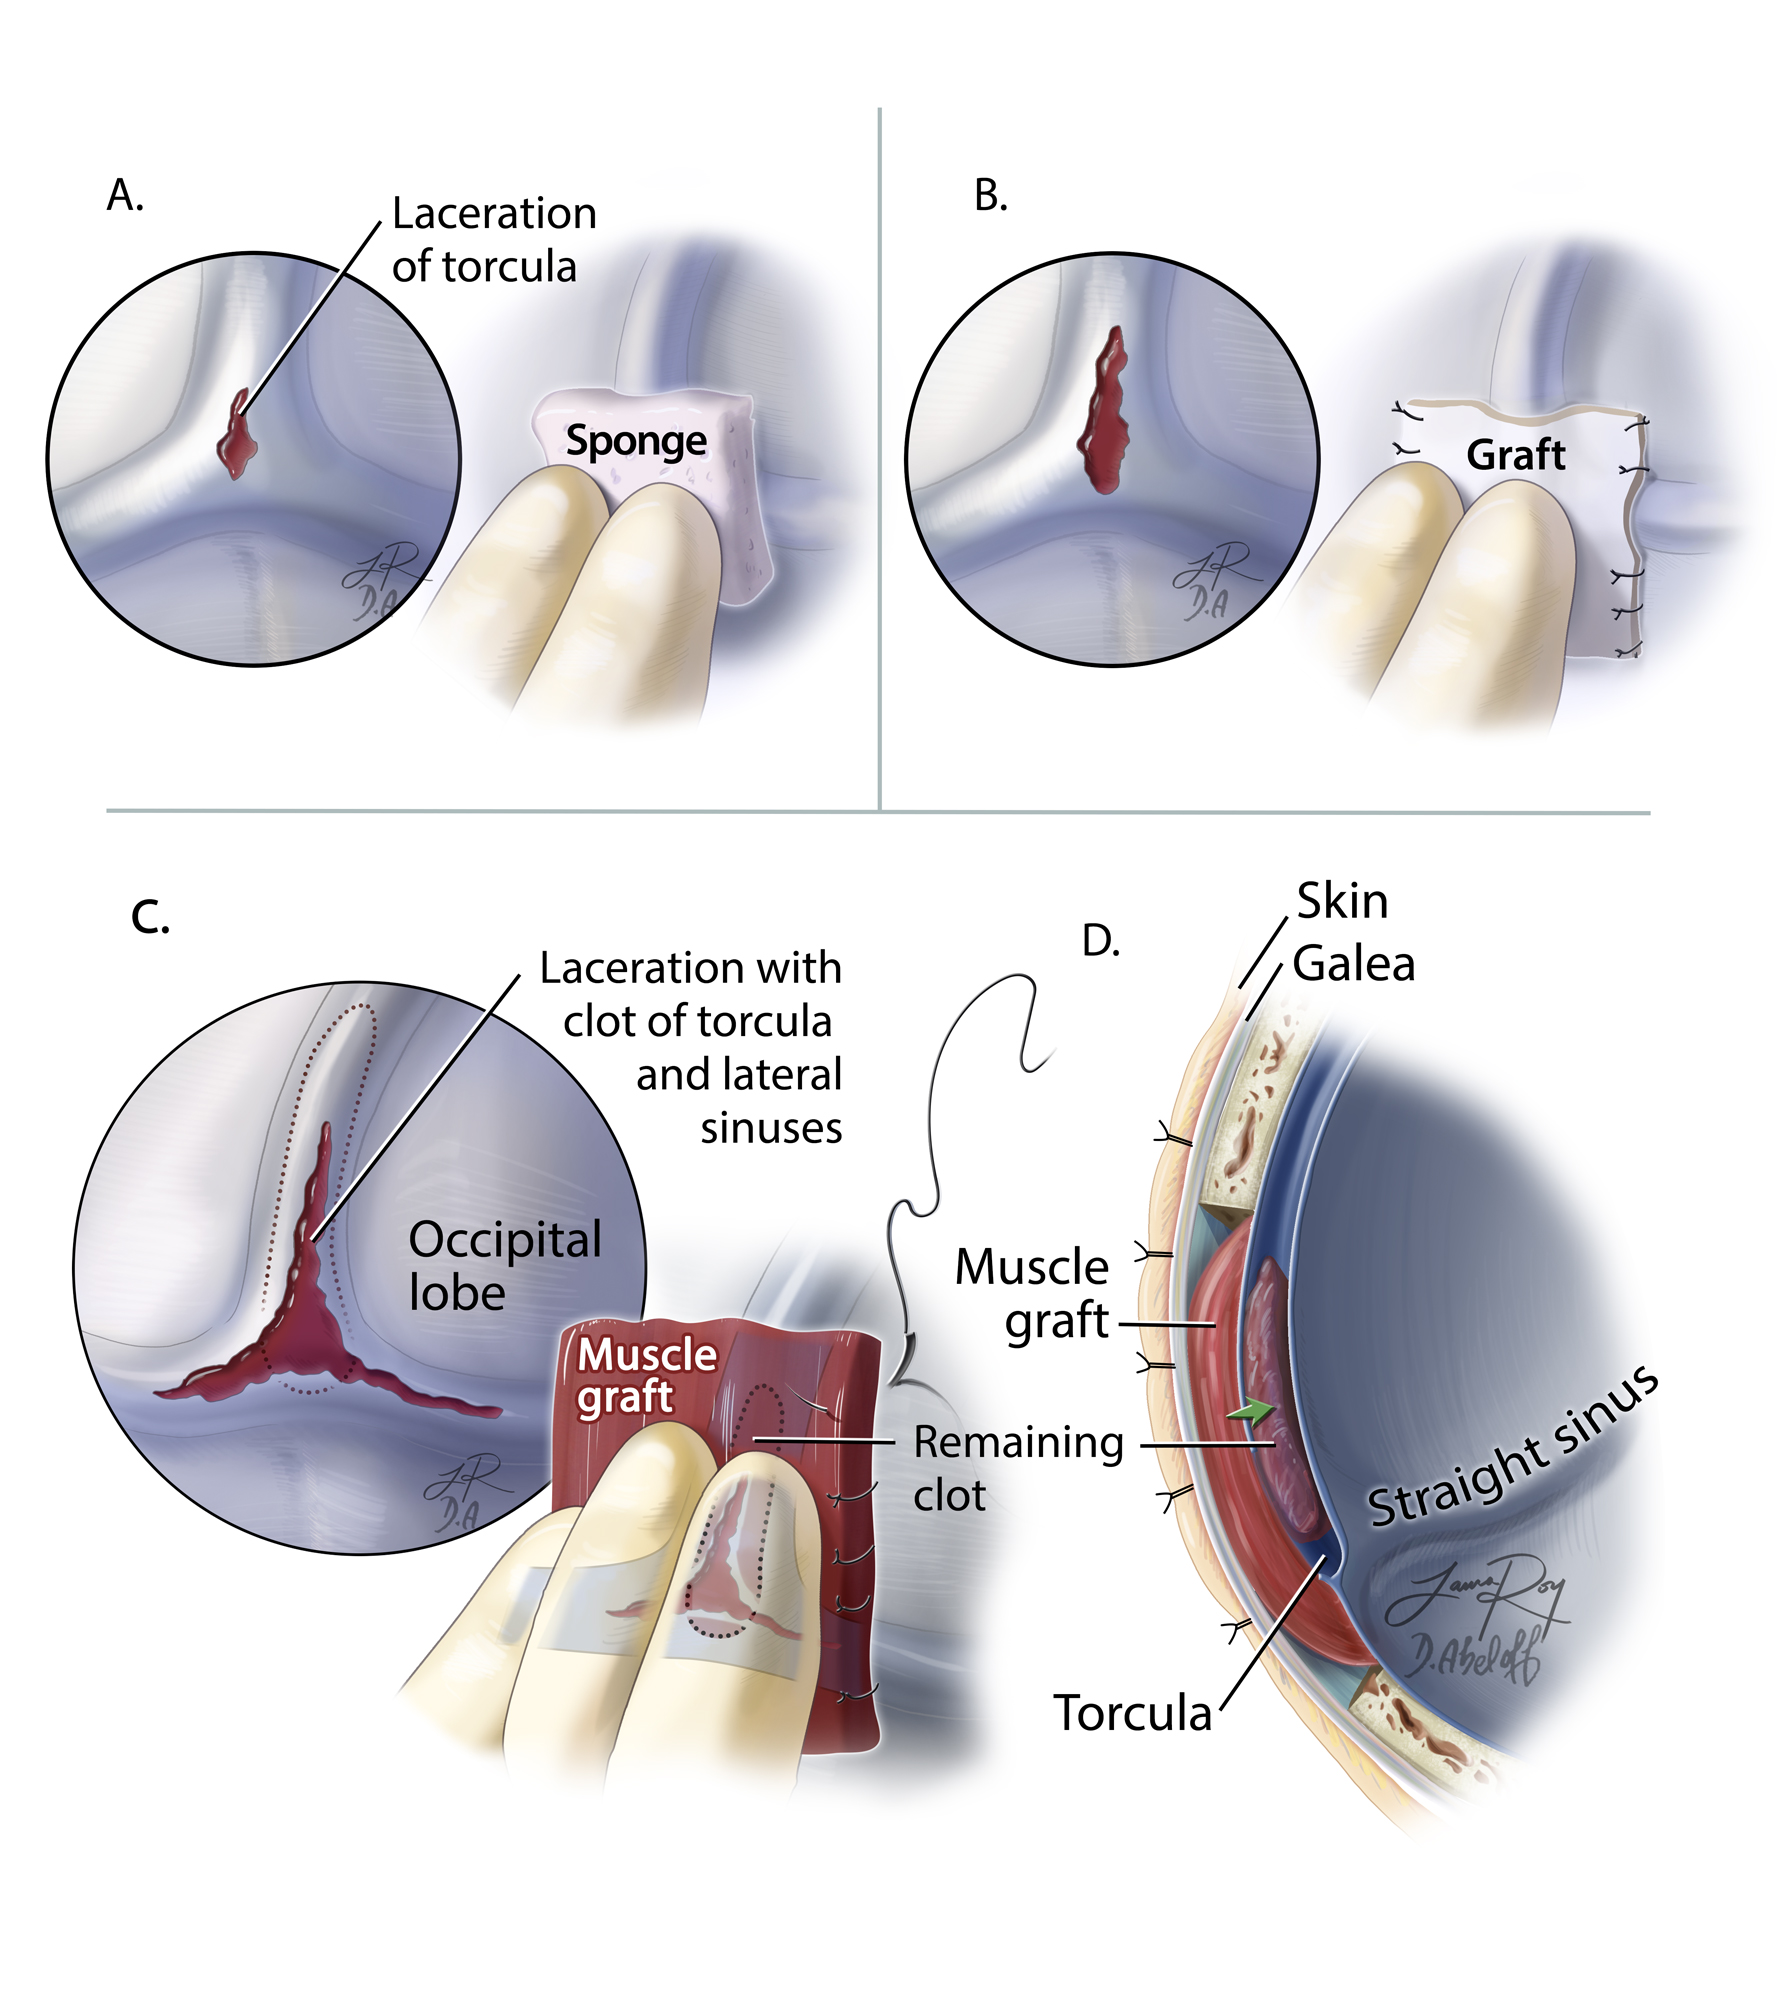 Figure 8: The steps involved in repair of a torcular tear are illustrated. For small lacerations, a piece of Gelfoam sponge is temporarily placed over the laceration covered with a cottonoid patty to control the bleeding (A, left upper). The tamponade should not occlude the dural sinuses and keep the flow in the torcula relatively preserved. A significant occlusion of the trocula can lead to sudden brain swelling, complicating any management scheme. For larger lacerations, a piece of fascia or allograft dura may be sutured in place (B, right upper corner). For extensive lacerations of the torcula, a large piece of muscle and its attached fascia are used to construct the roof of the sinus. Note that some of the clot within the sinsues should be removed before the last stitches are placed. Also, one of the more affected transverse sinuses may be unsalvageable and has to be sacrificed during the process of reconstruction (C and D, bottom panel). Aggressive removal of the intraluminal clot in a relatively relaxed brain is not advised due to the high risk of uncontrollable bleeding.